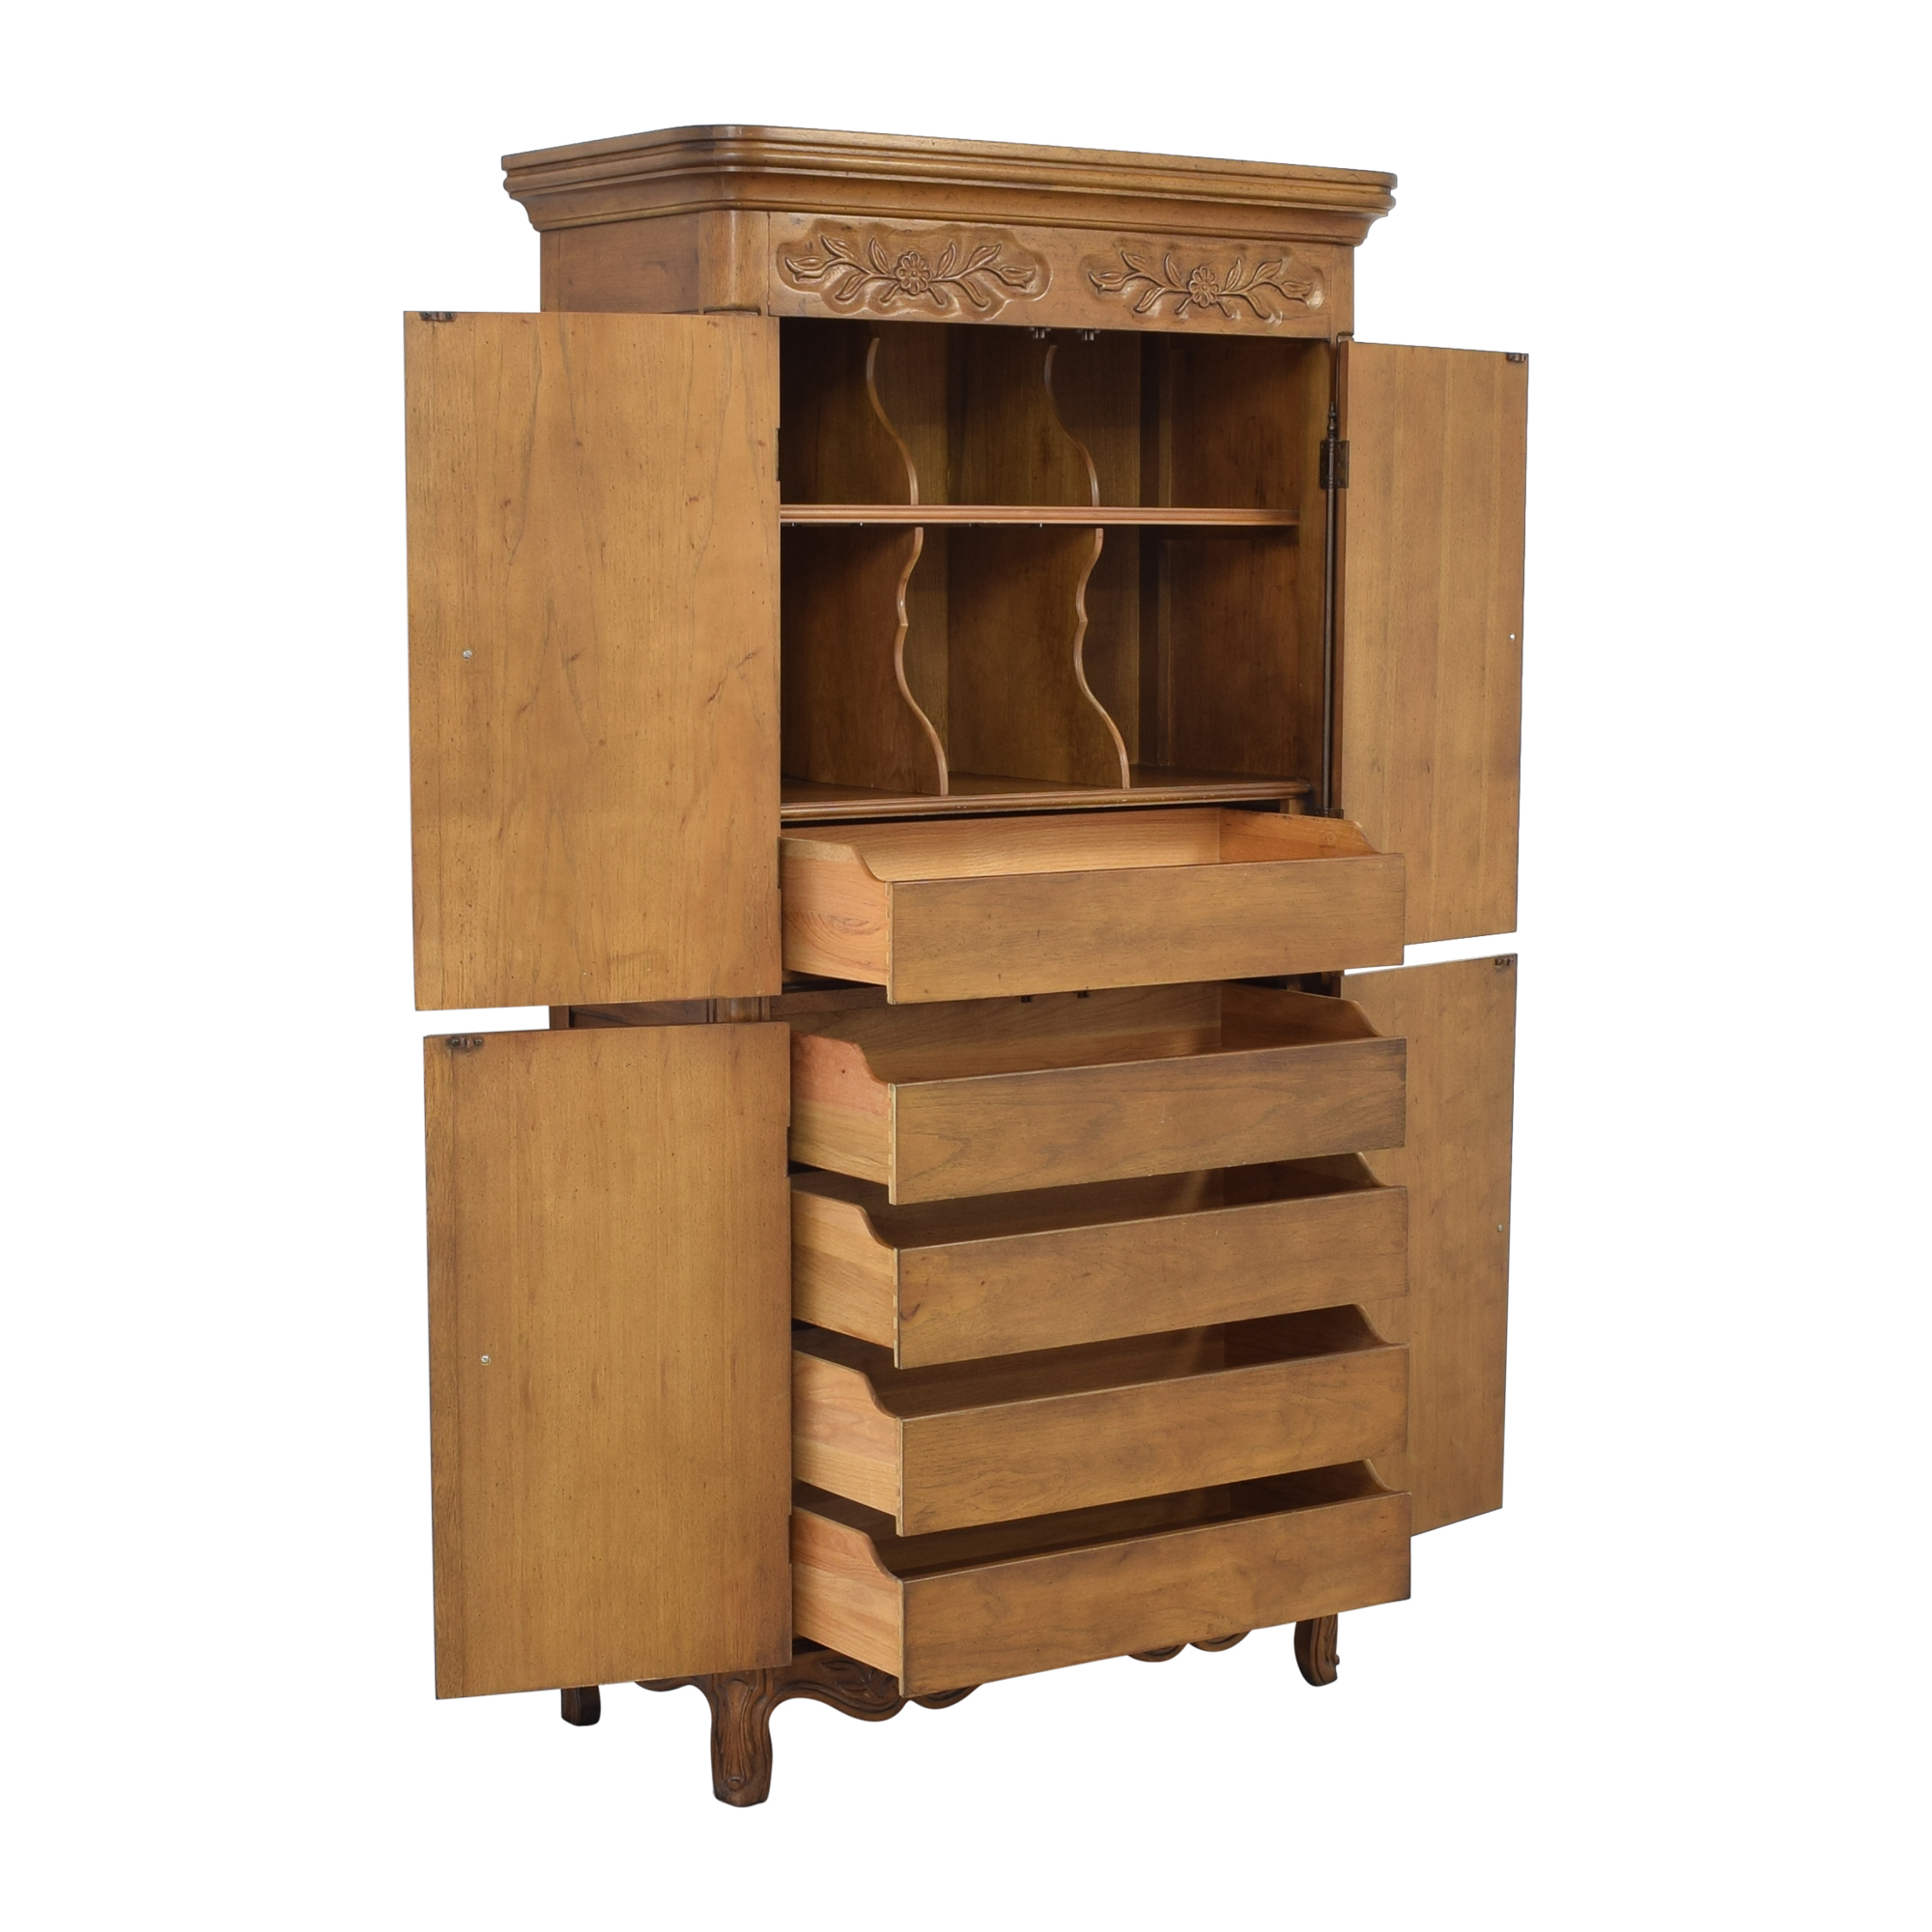 Drexel Drexel Armoire with Cabinets coupon